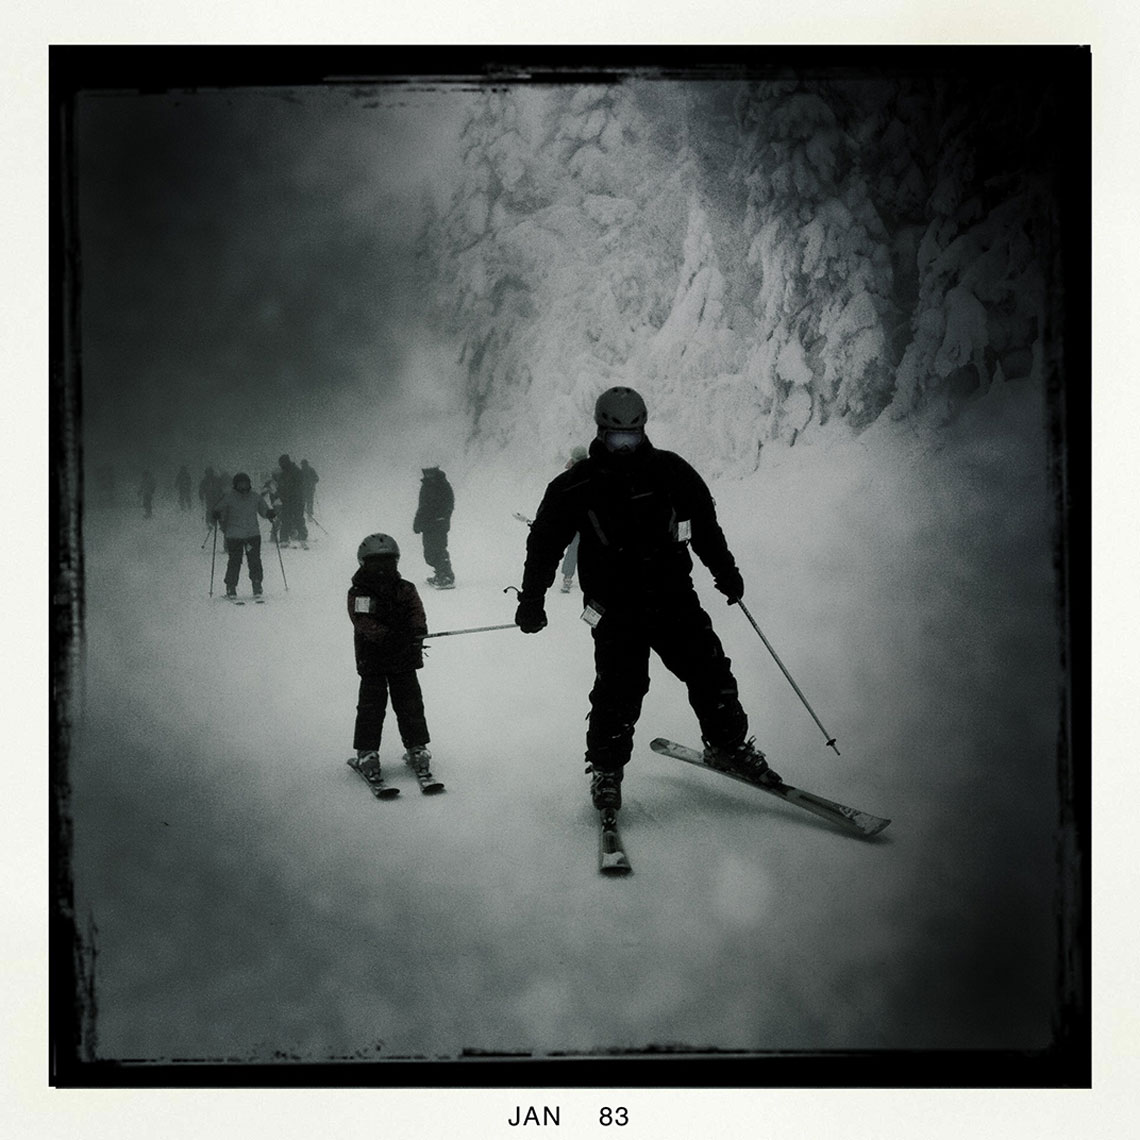 Father and Son Skiing Mont Tremblant Canada